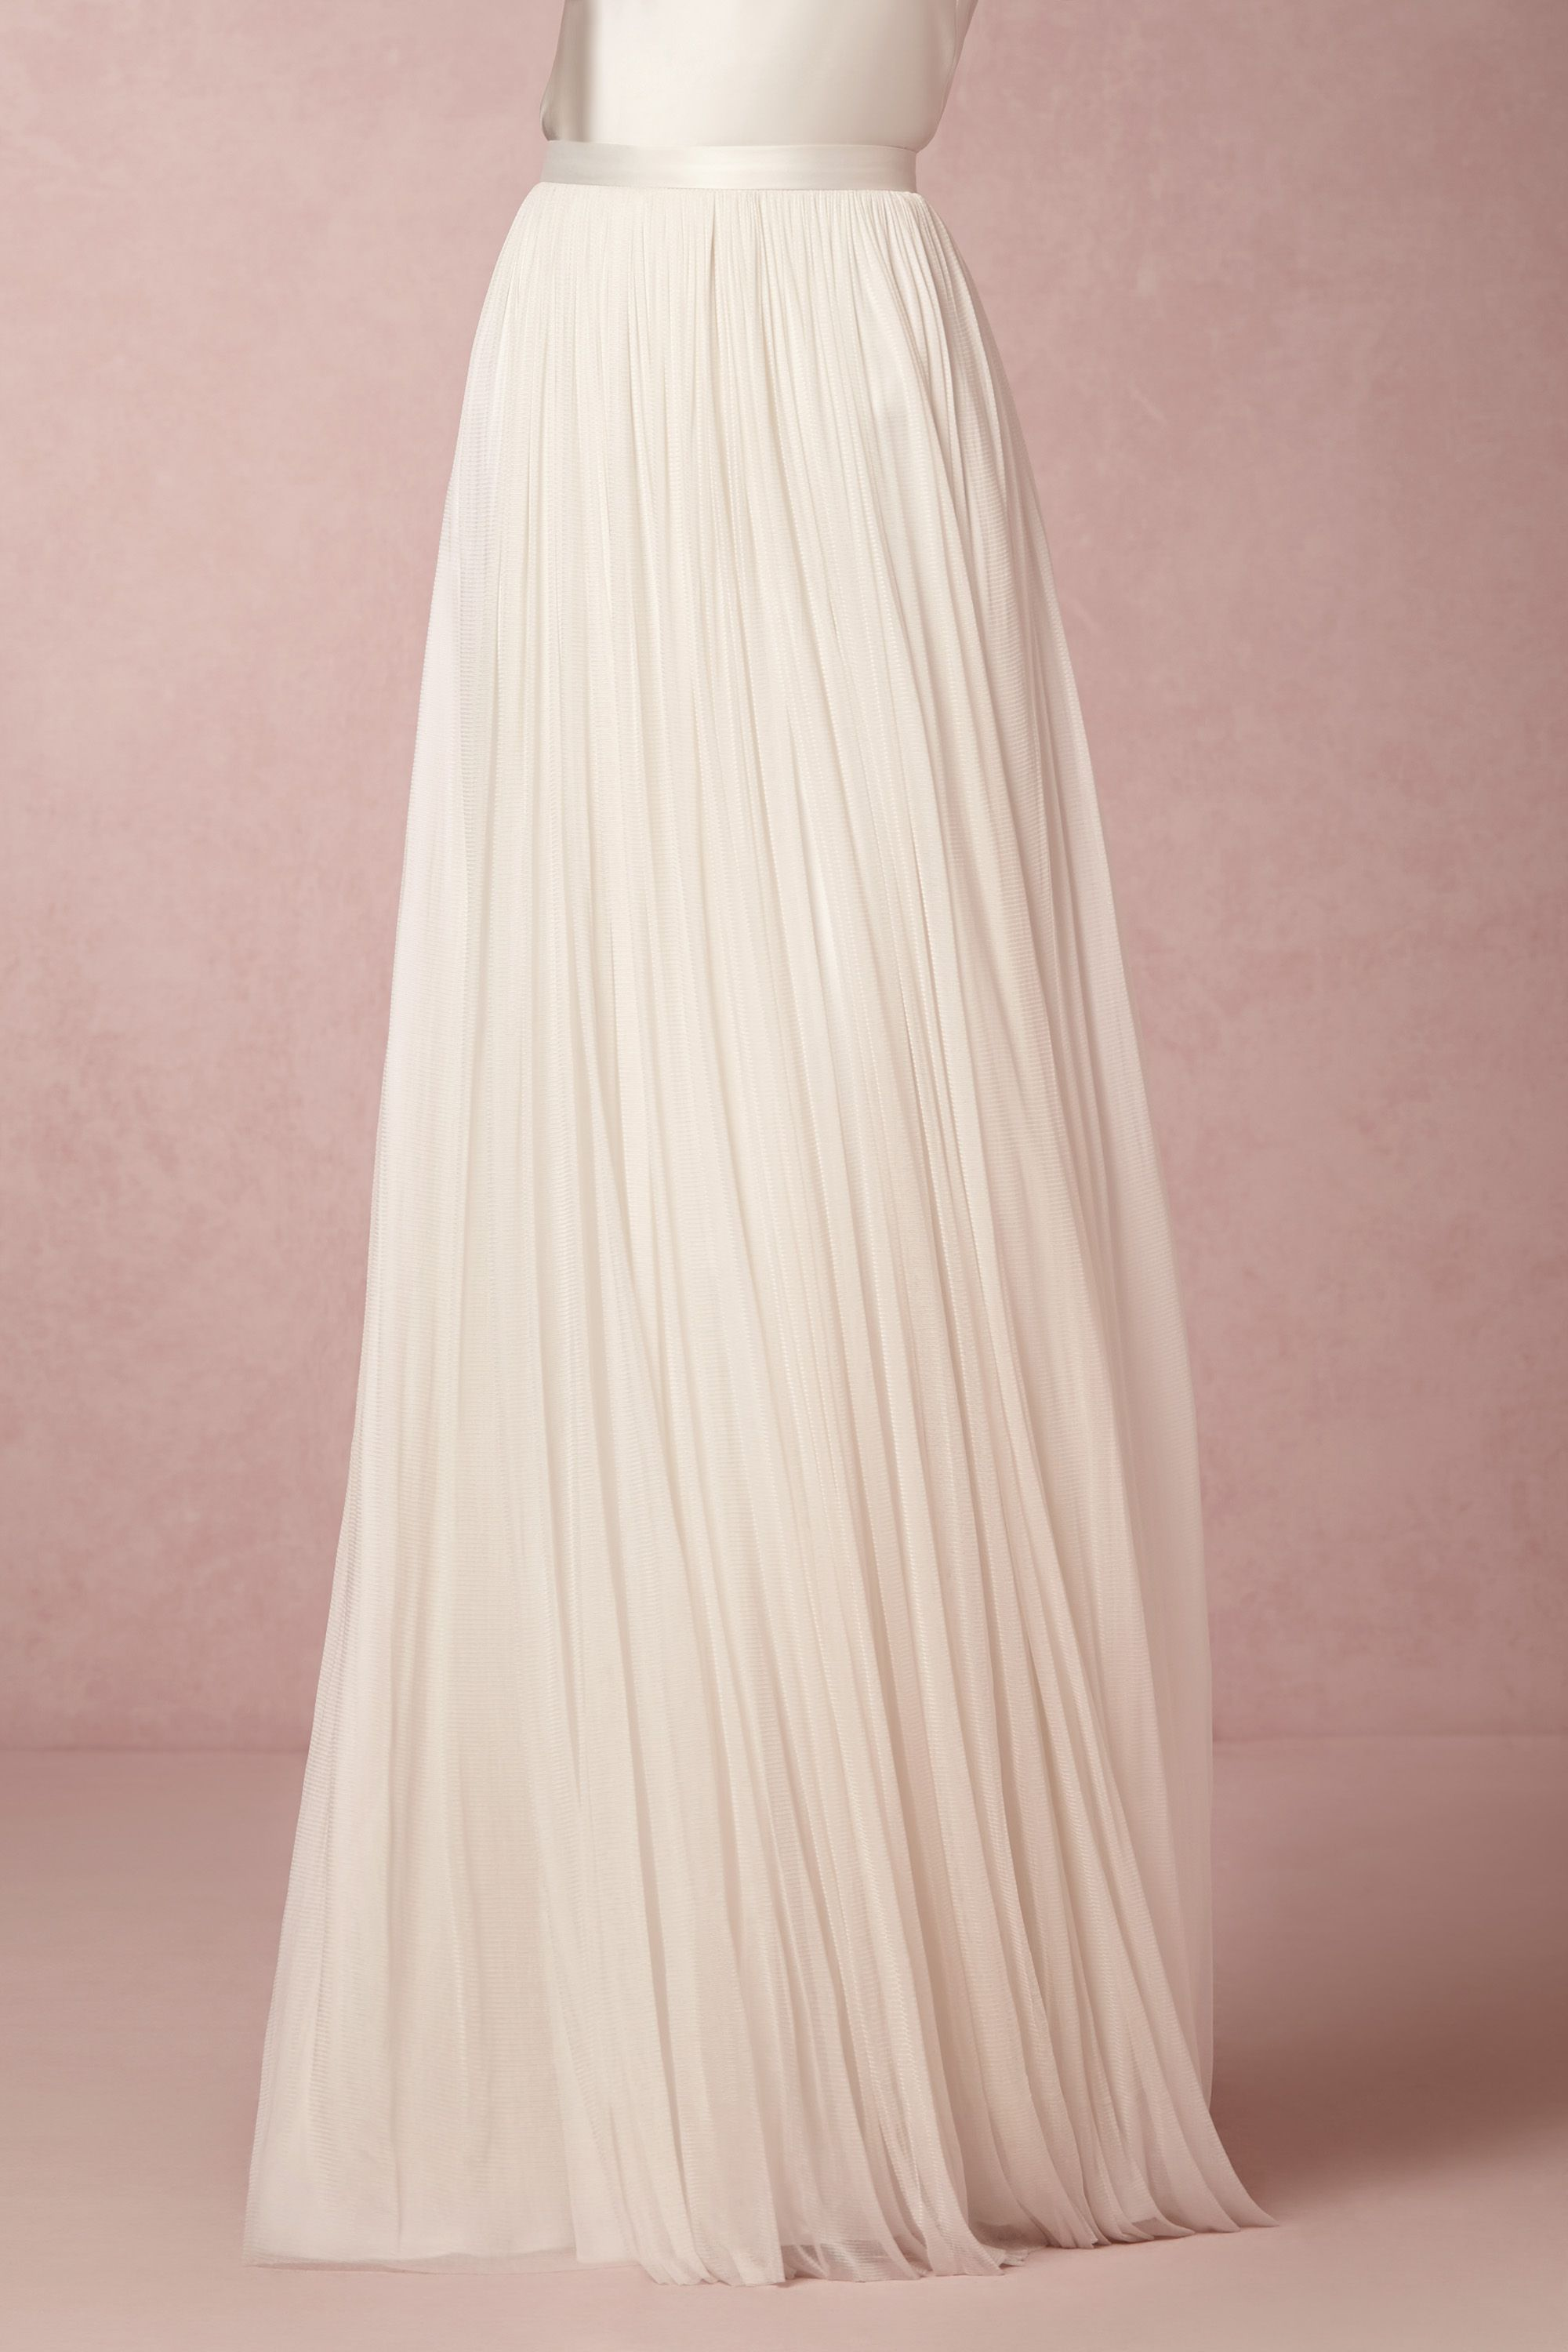 Design your own wedding dress cheap  Pin by Style Island on Now Actually Preparing for THAT Day